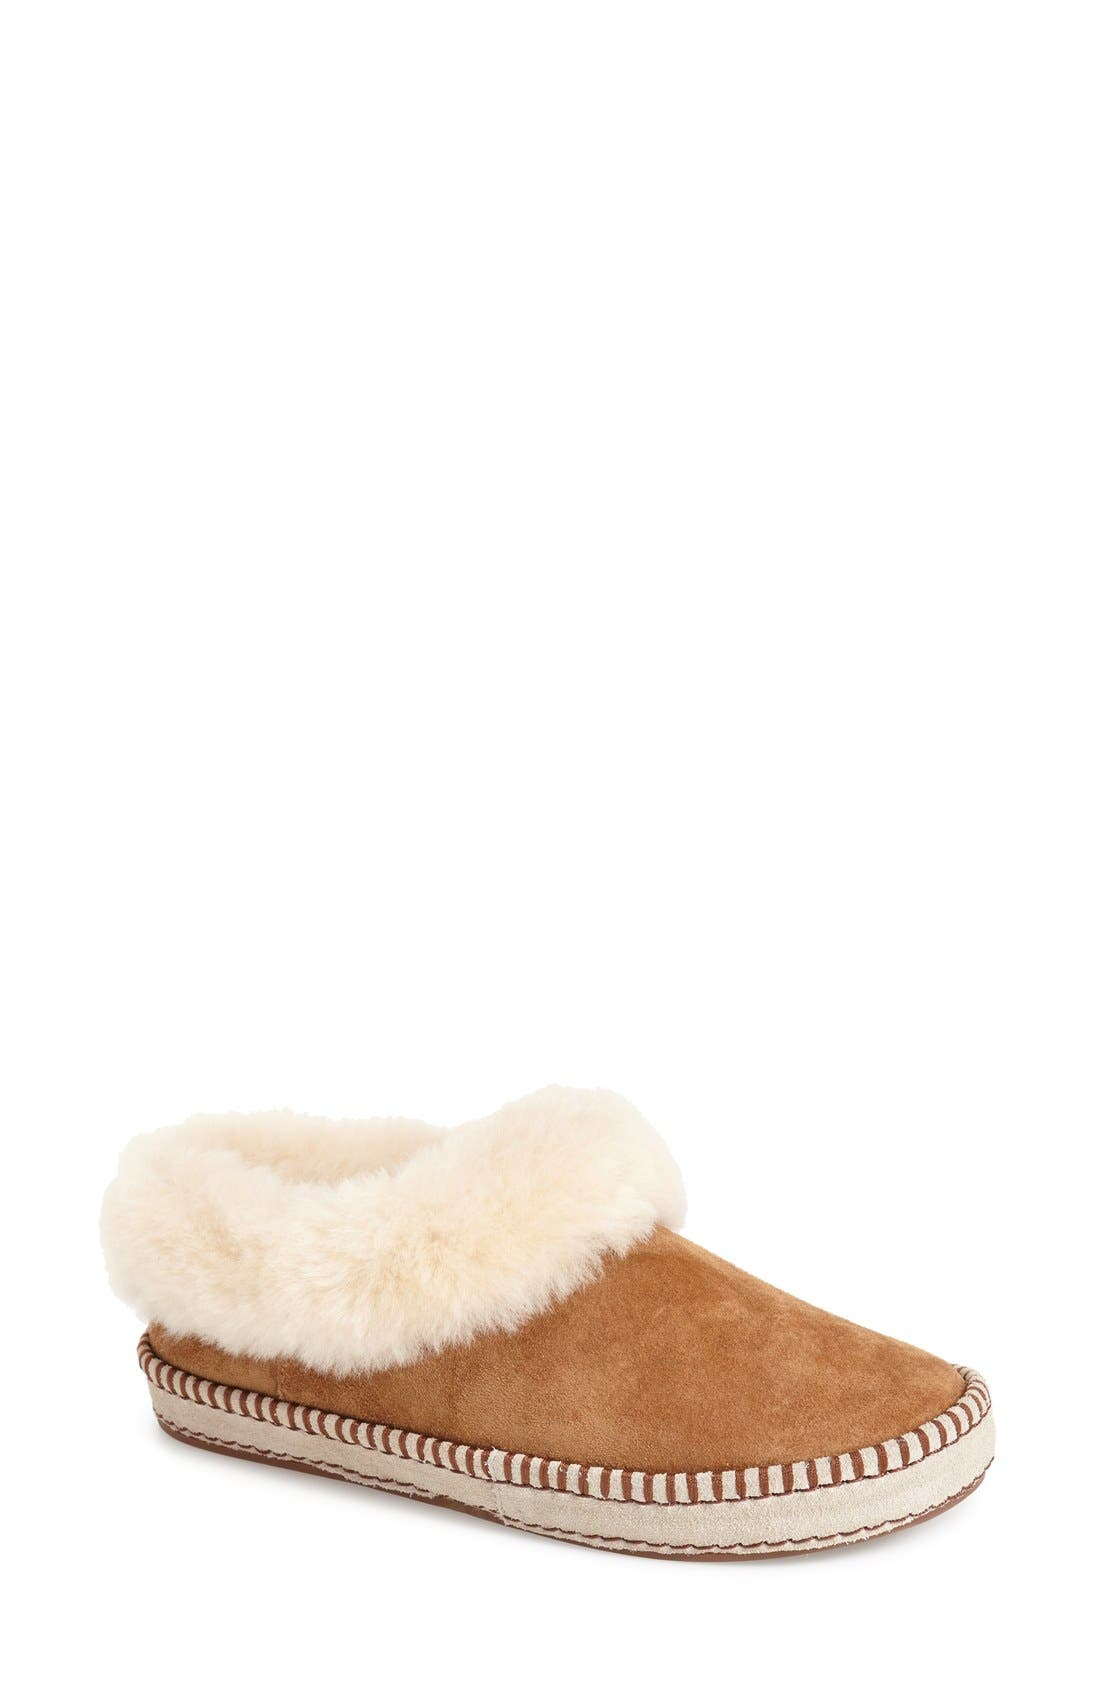 Wrin Slipper,                             Main thumbnail 1, color,                             Chestnut Suede